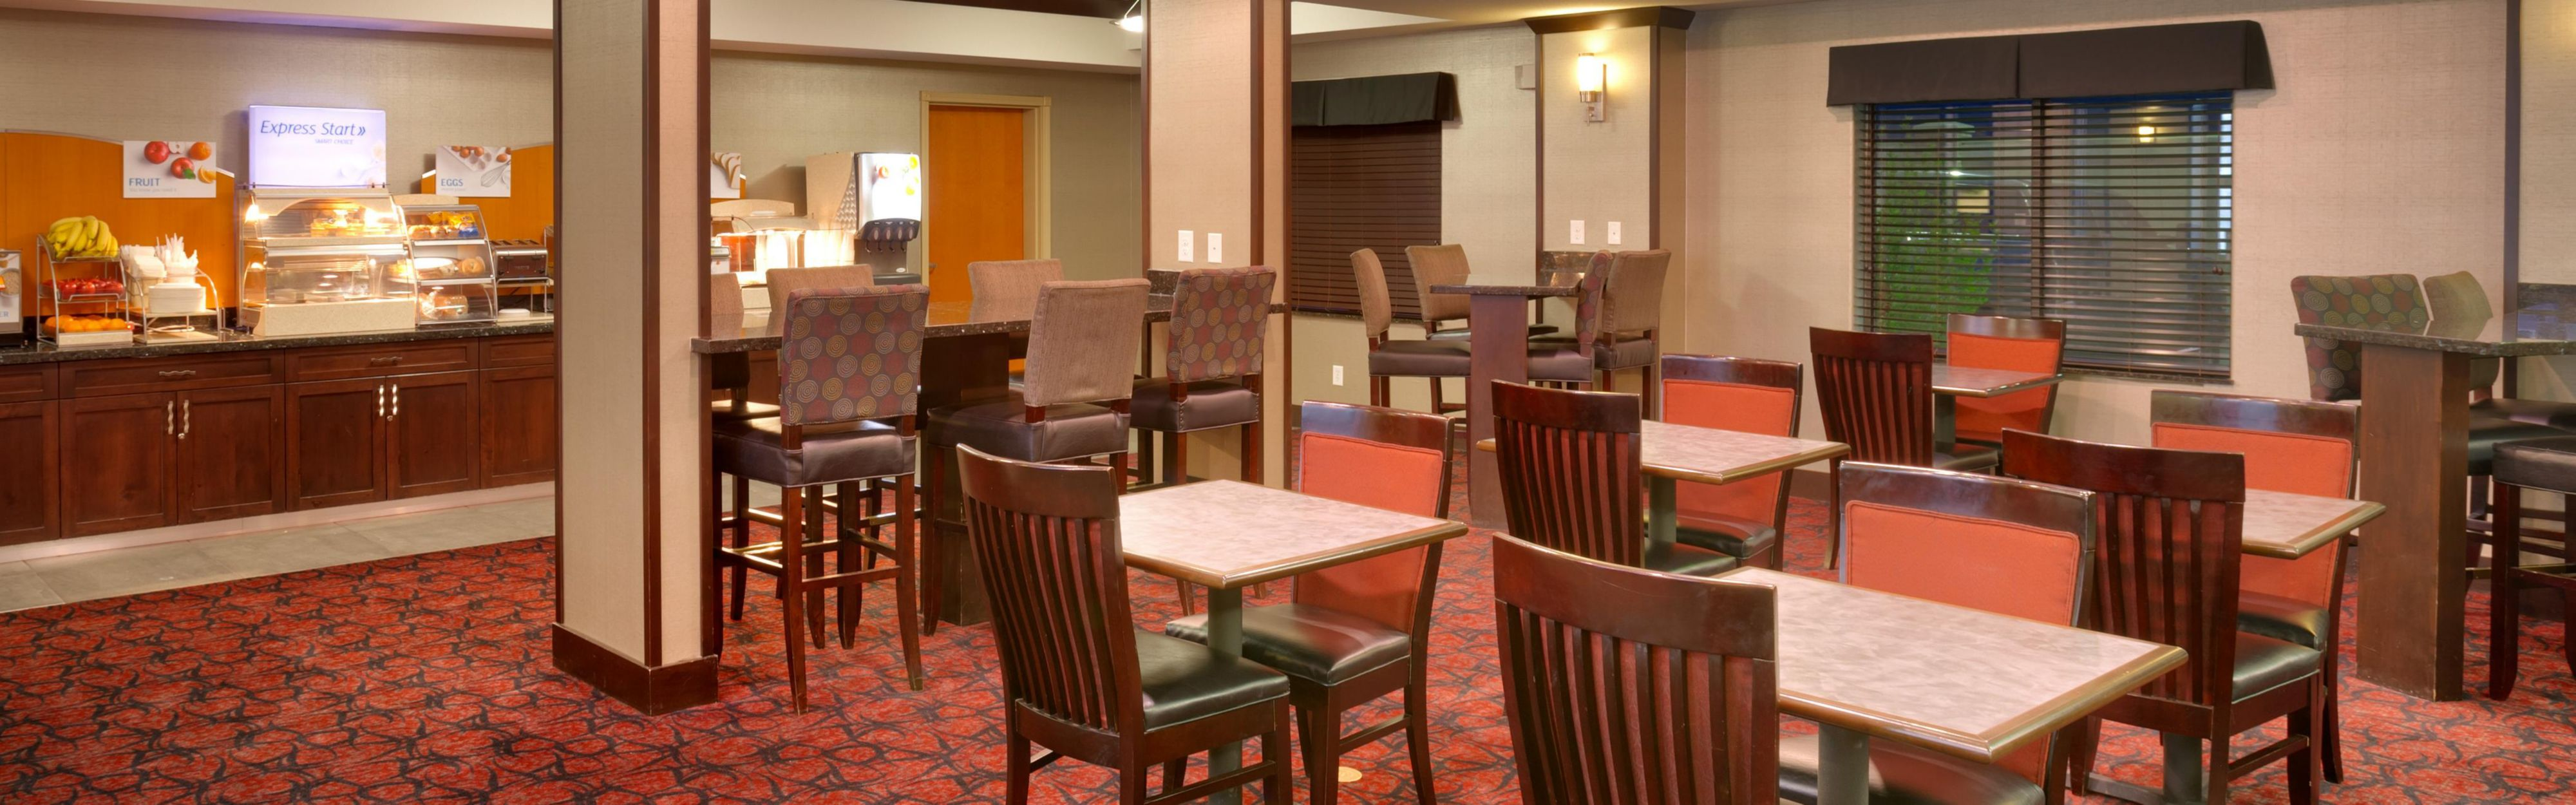 Holiday Inn Express & Suites Grand Junction image 3